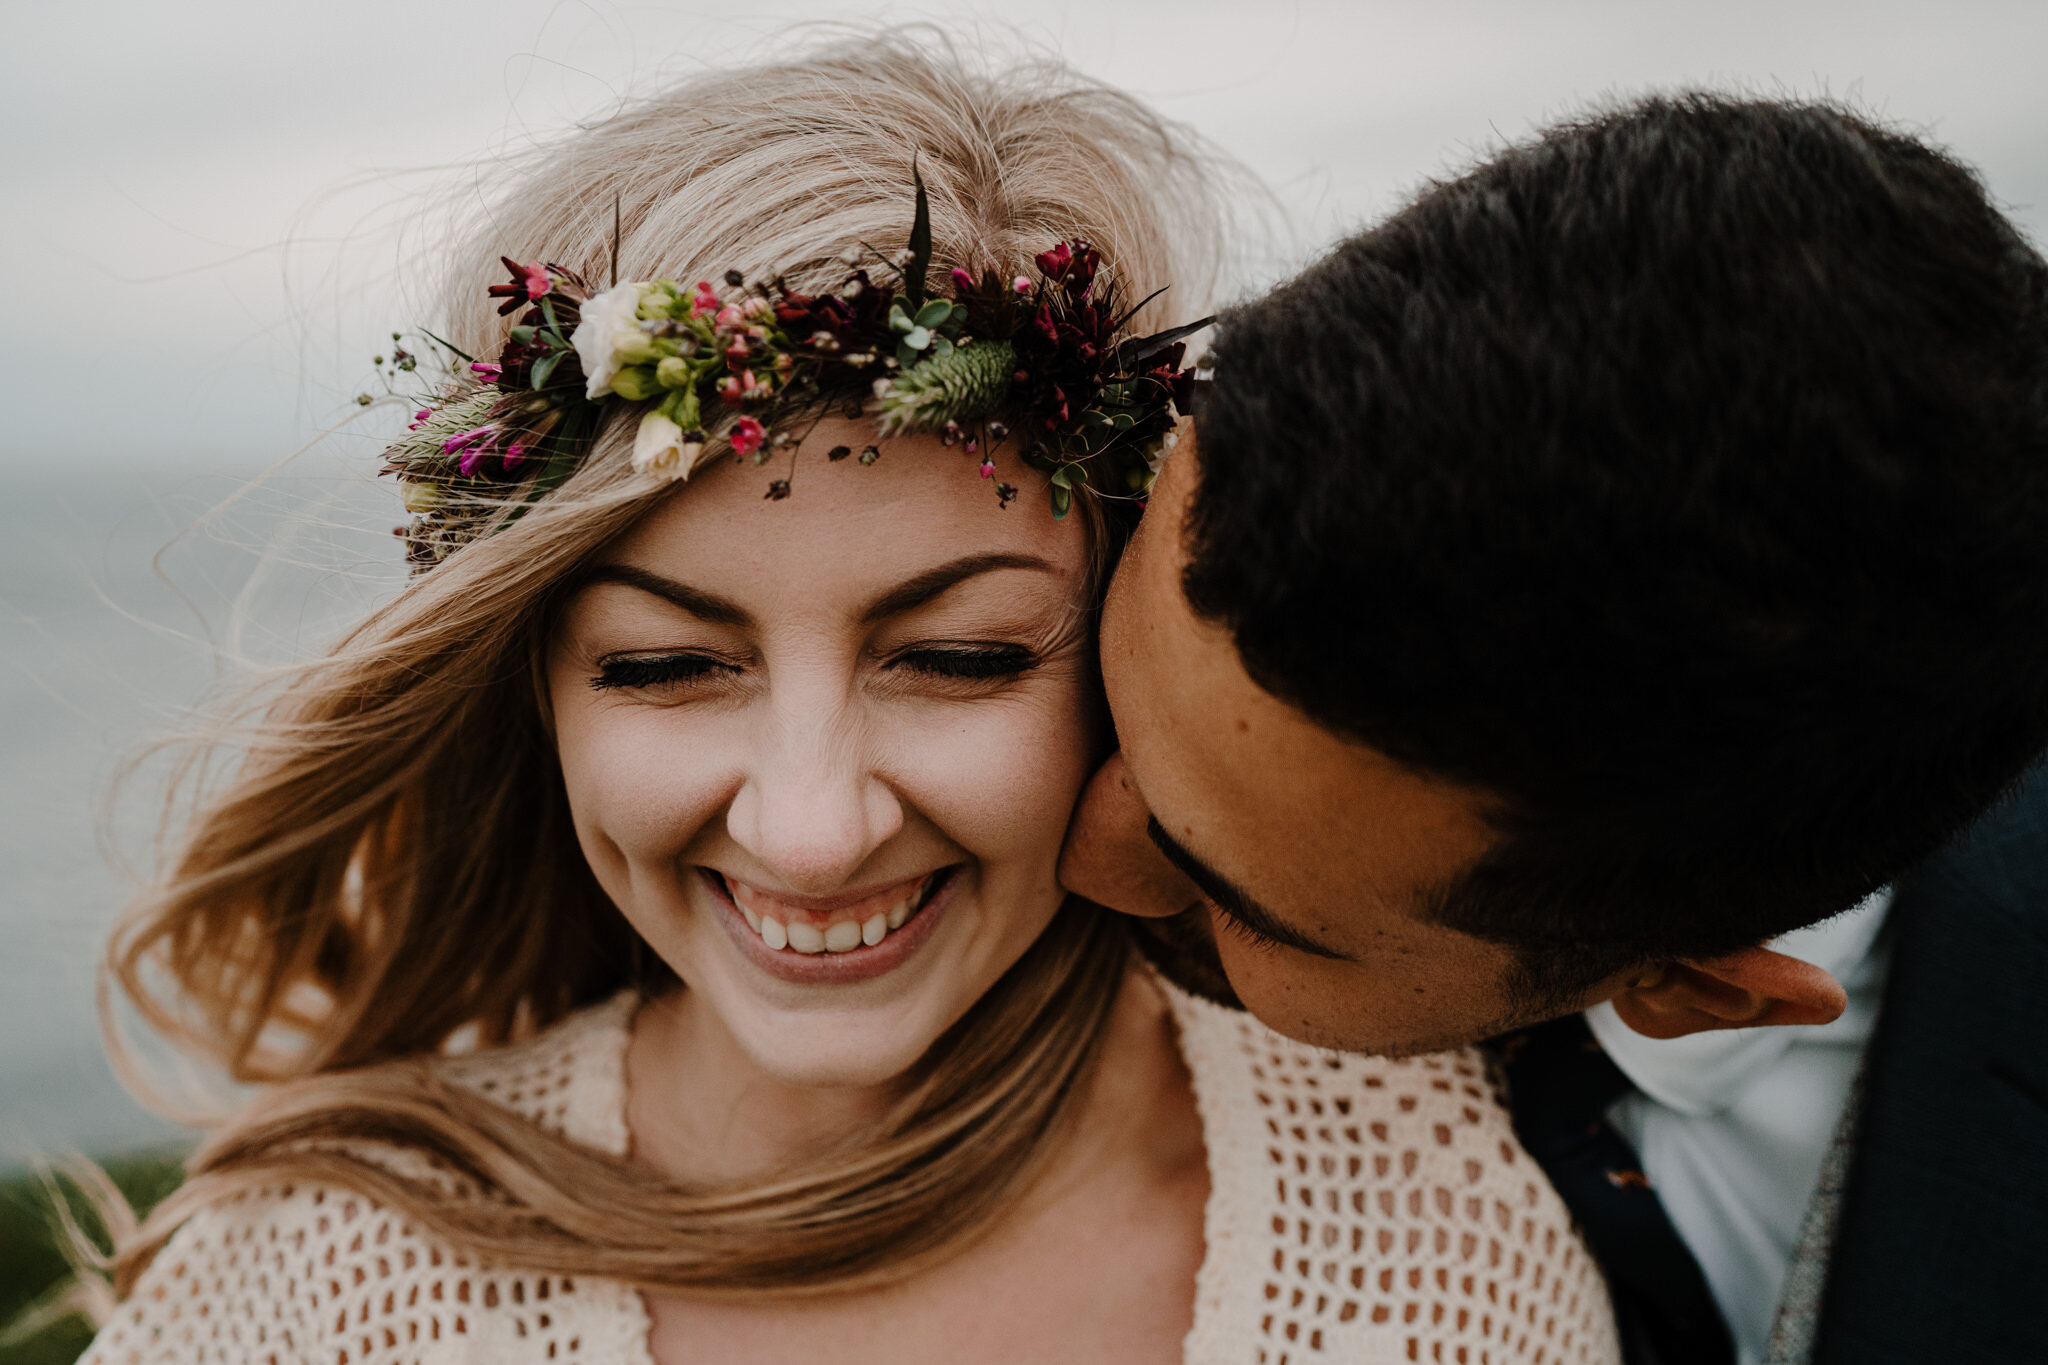 cute boho couple laughing close up kiss on cheek Cliffs of Moher ireland